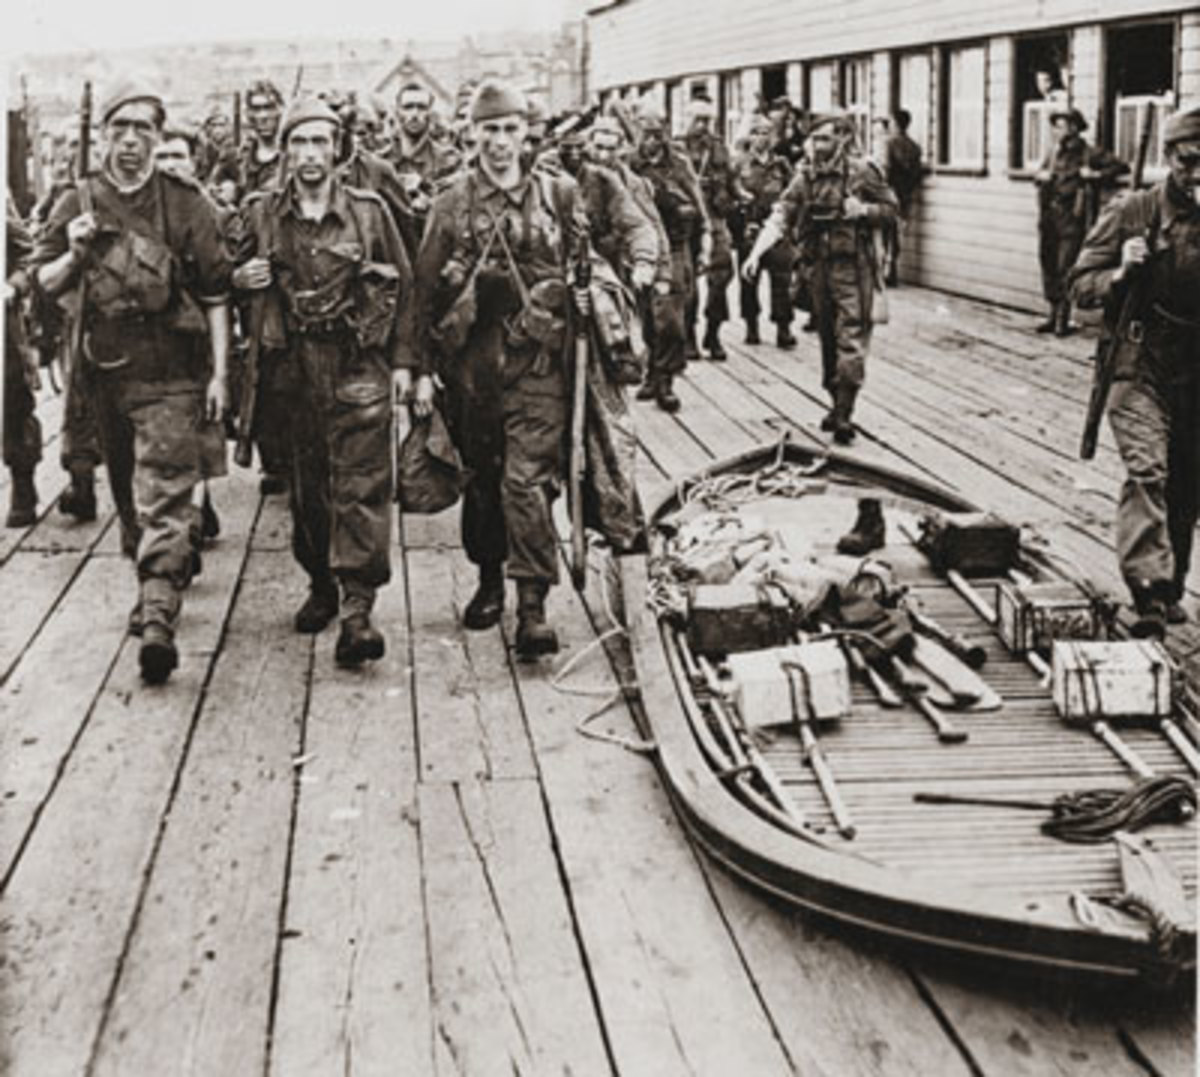 British Commando's ready to embark